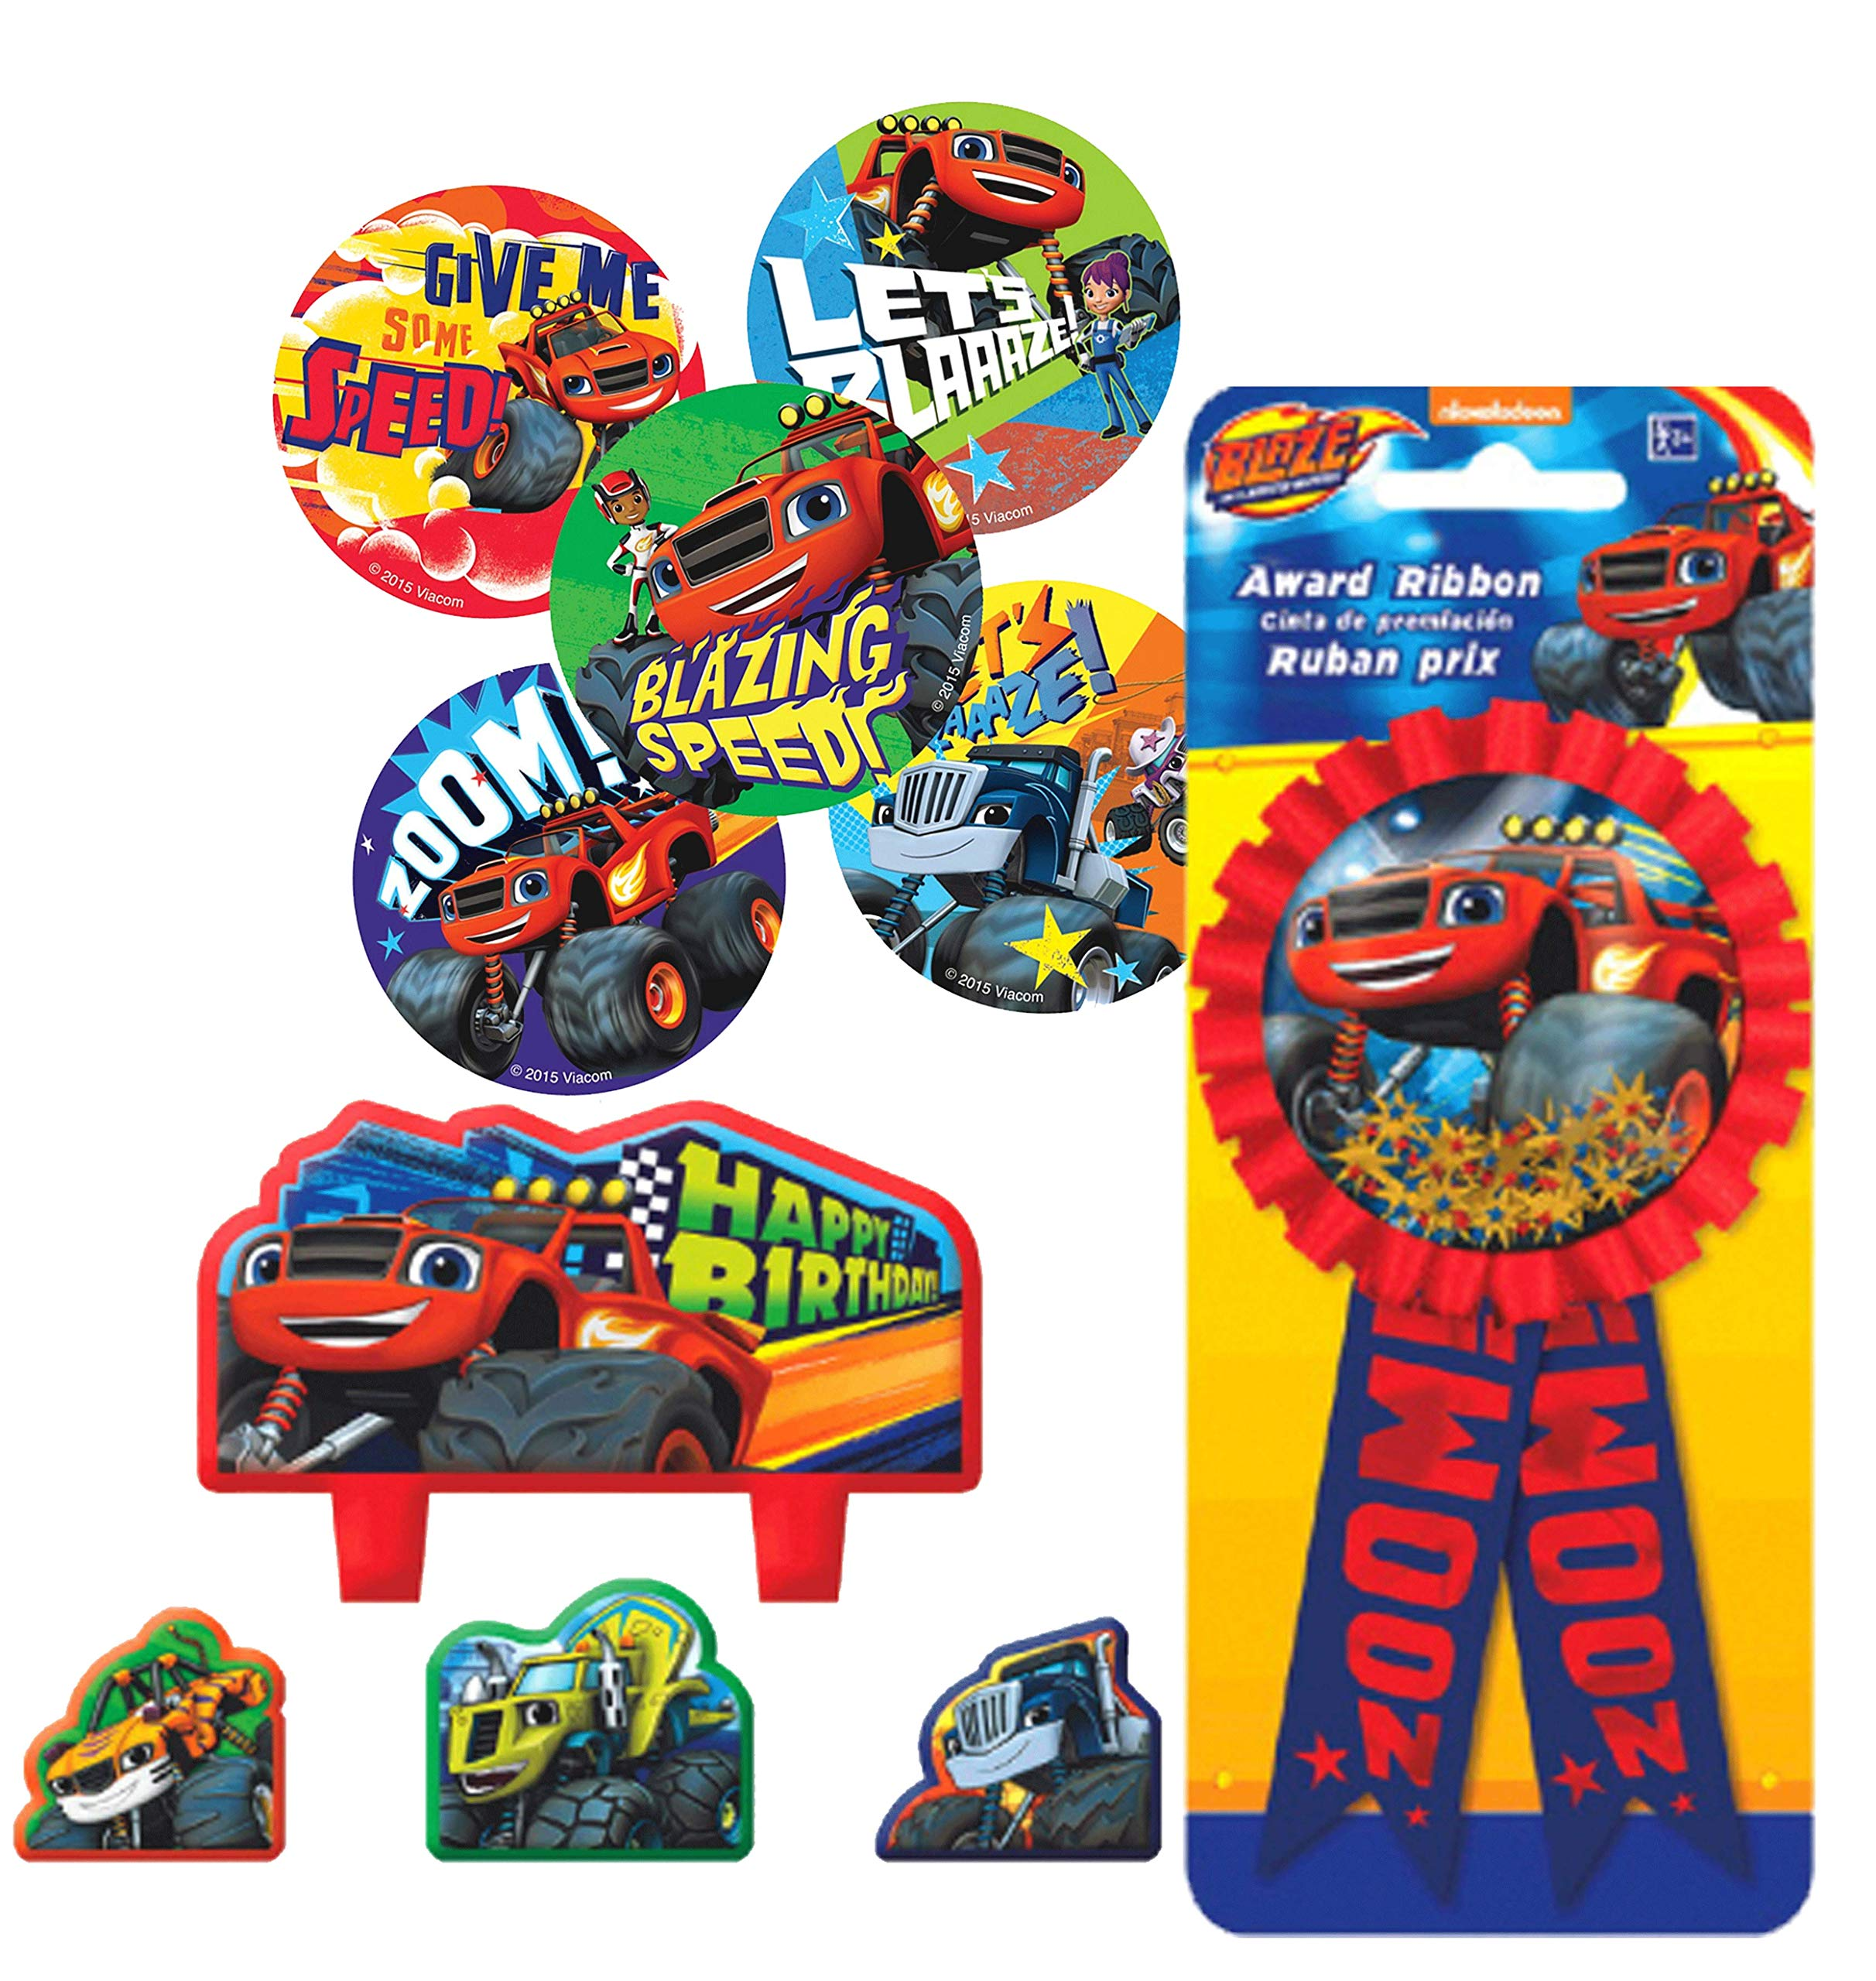 Blaze and the Monster Machines Birthday Cake Candle Set & Birthday Party Confetti Filled Ribbon for Guest of Honor! Plus Blaze Party Favor Stickers!